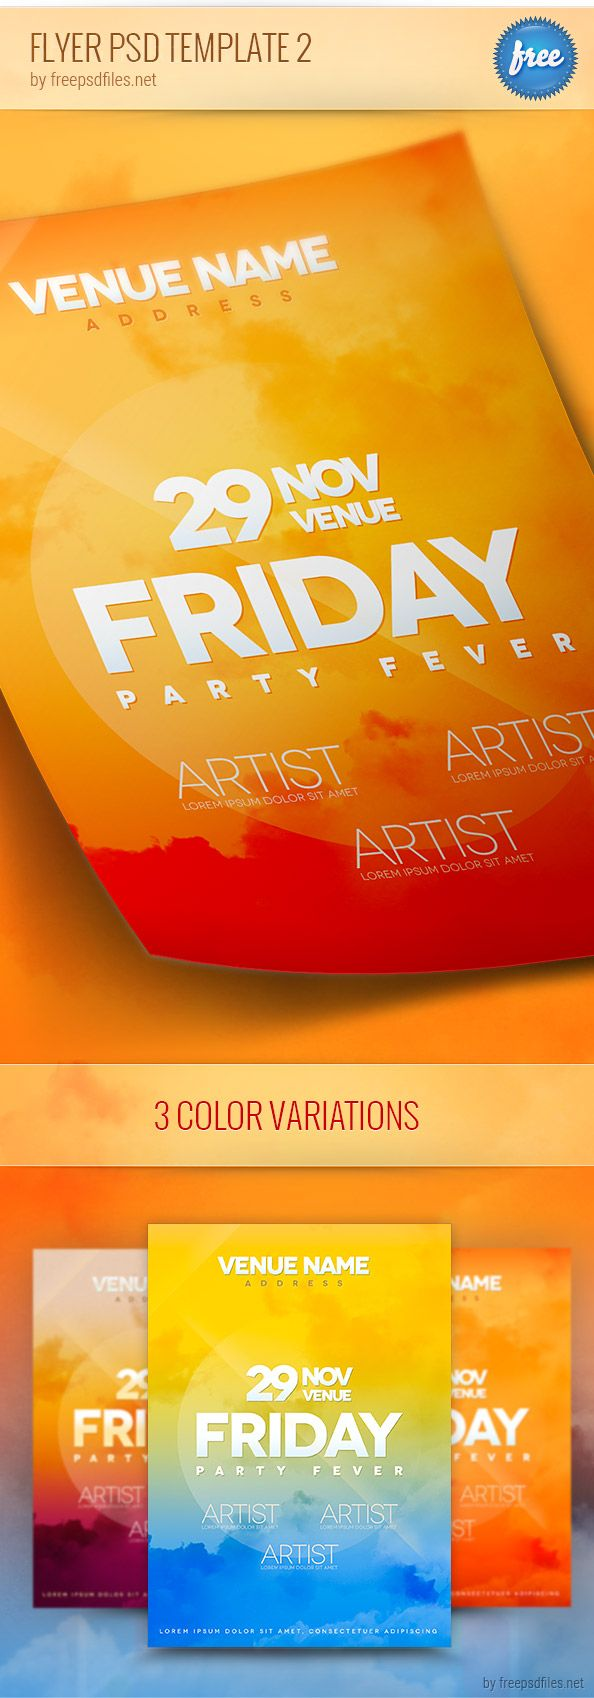 Poster design template free - Flyer Psd Template Designed In 3 Different Color Schemes Event Flyer Poster Design